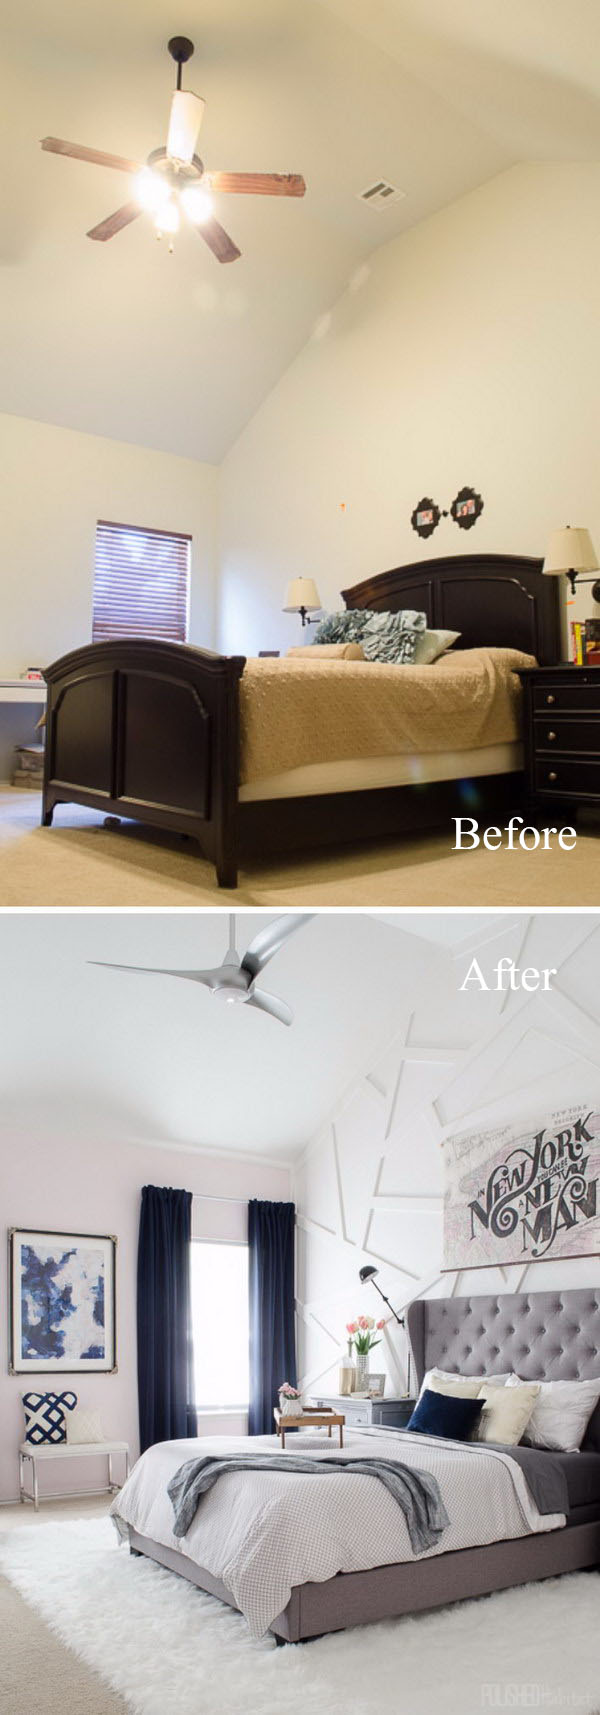 how to make your bedroom look rich